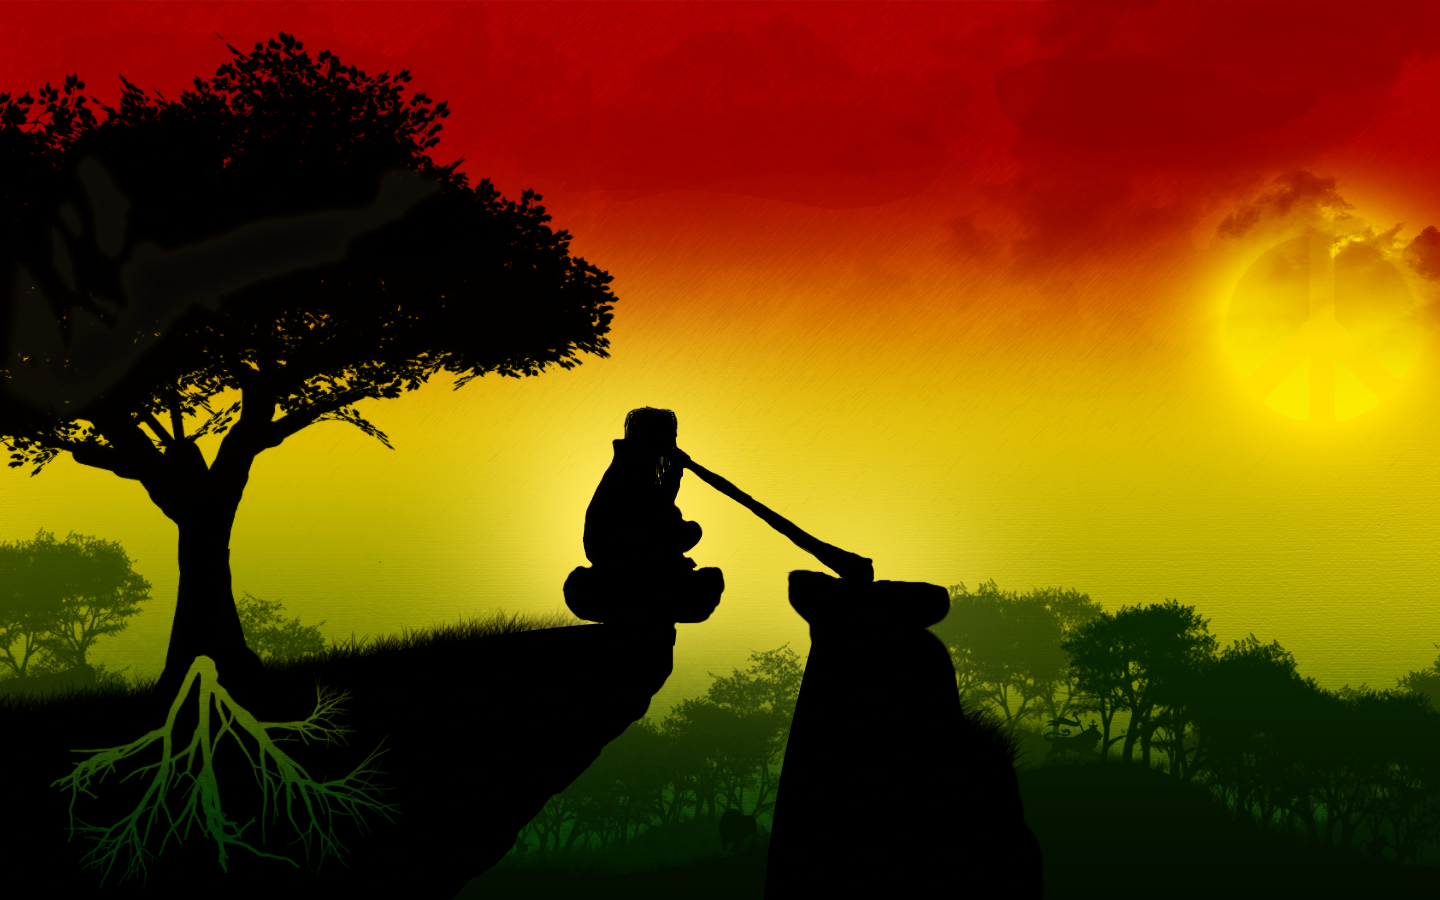 Wallpaper Rasta Wallpapers    Wallpapers For Desktop. Rasta Lion Wallpapers   Wallpaper Cave   Zion   Pinterest